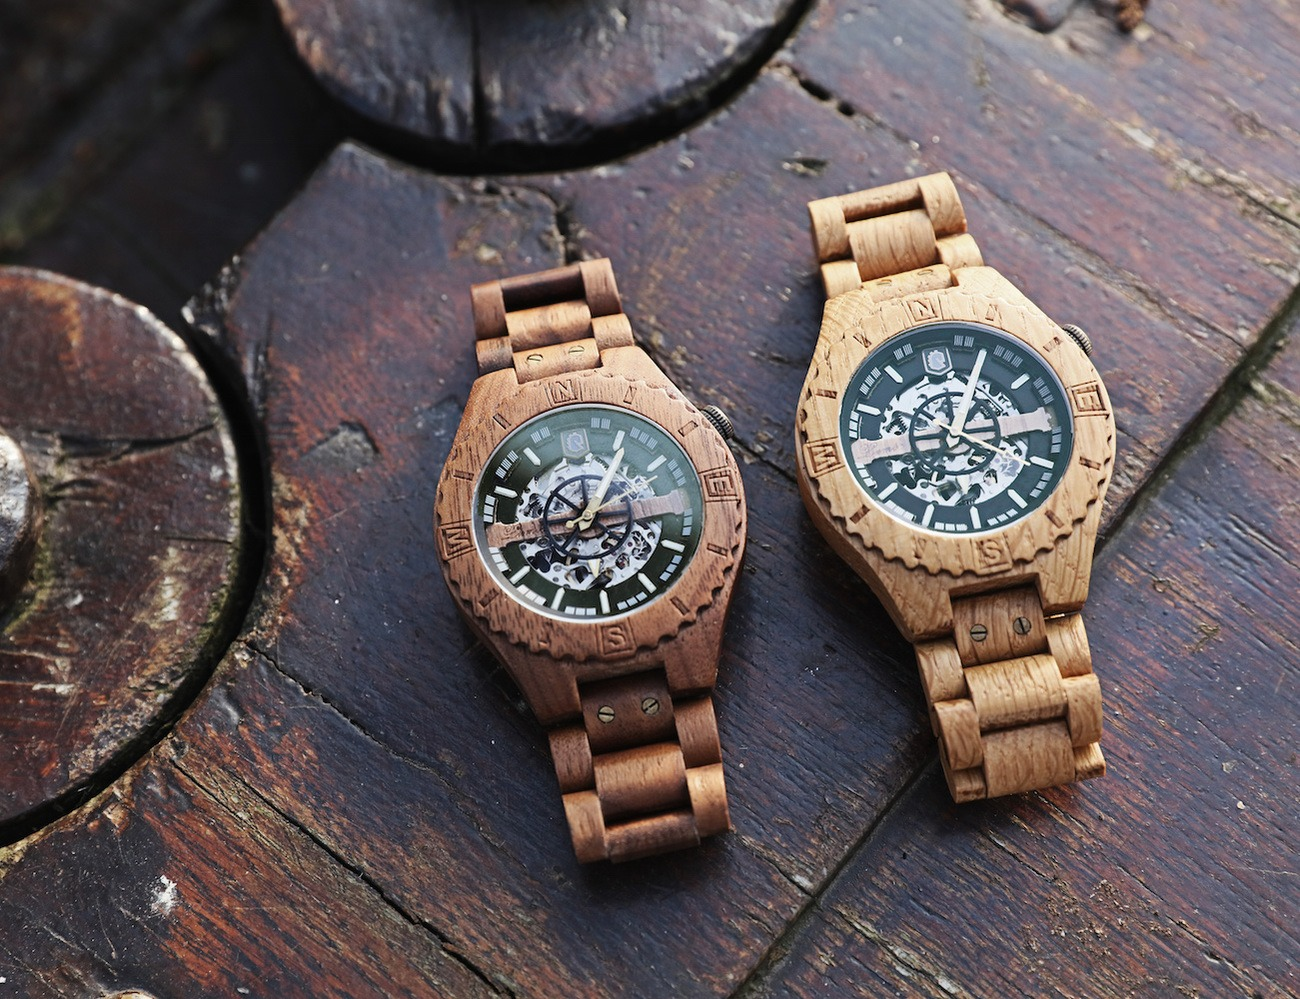 Troy – Handcrafted Wood Watch with Visible Skeleton